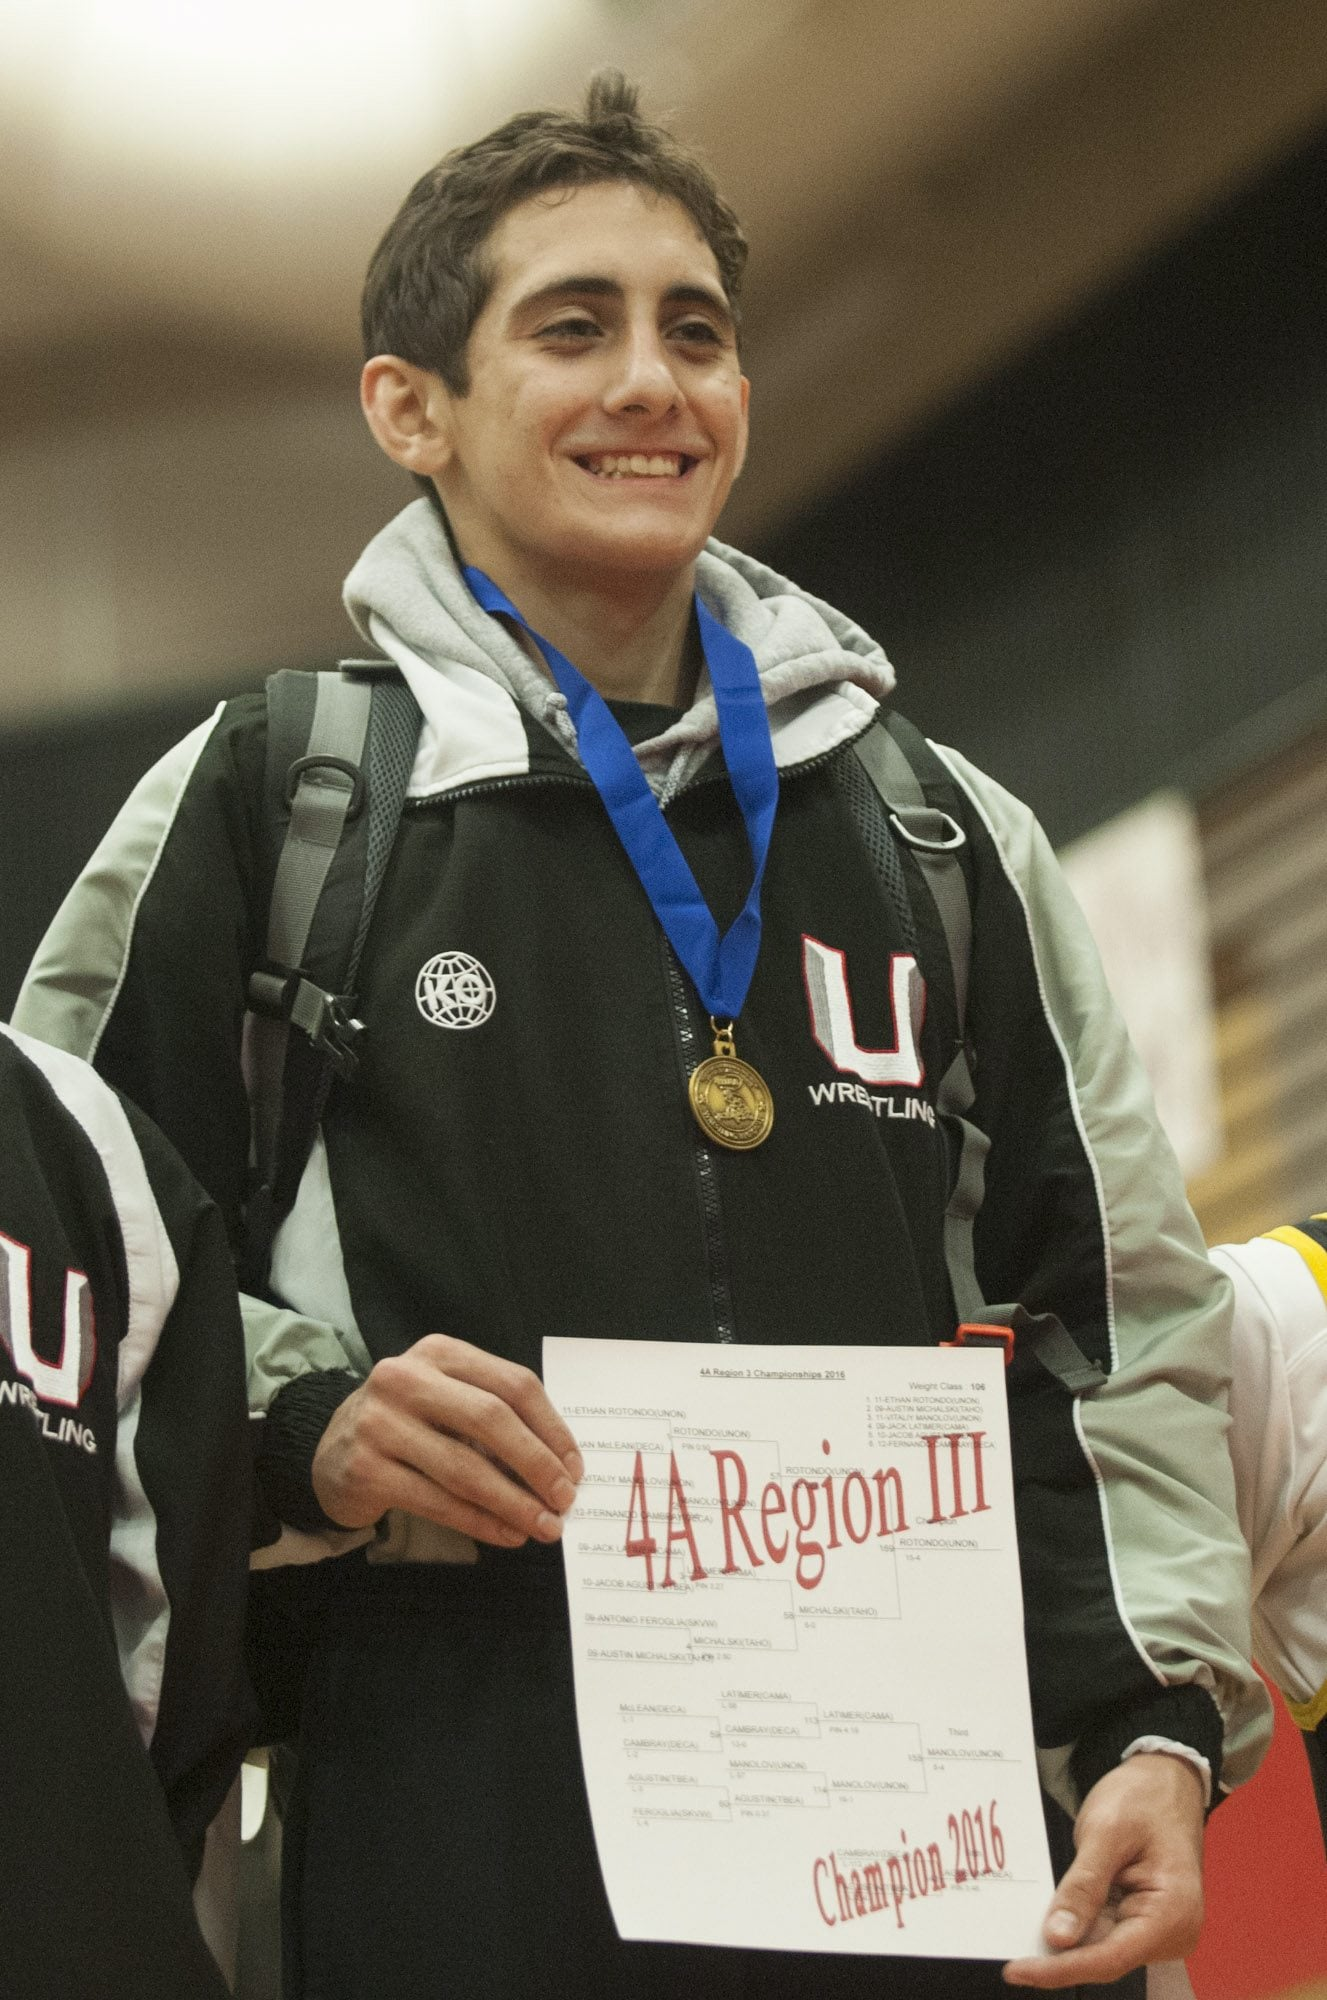 Ethan Rotondo of Union High School on the winners podium at the 4A Regional Wrestling Tournament in Camas Saturday February 13, 2016.  (Natalie Behring/ The Columbian)